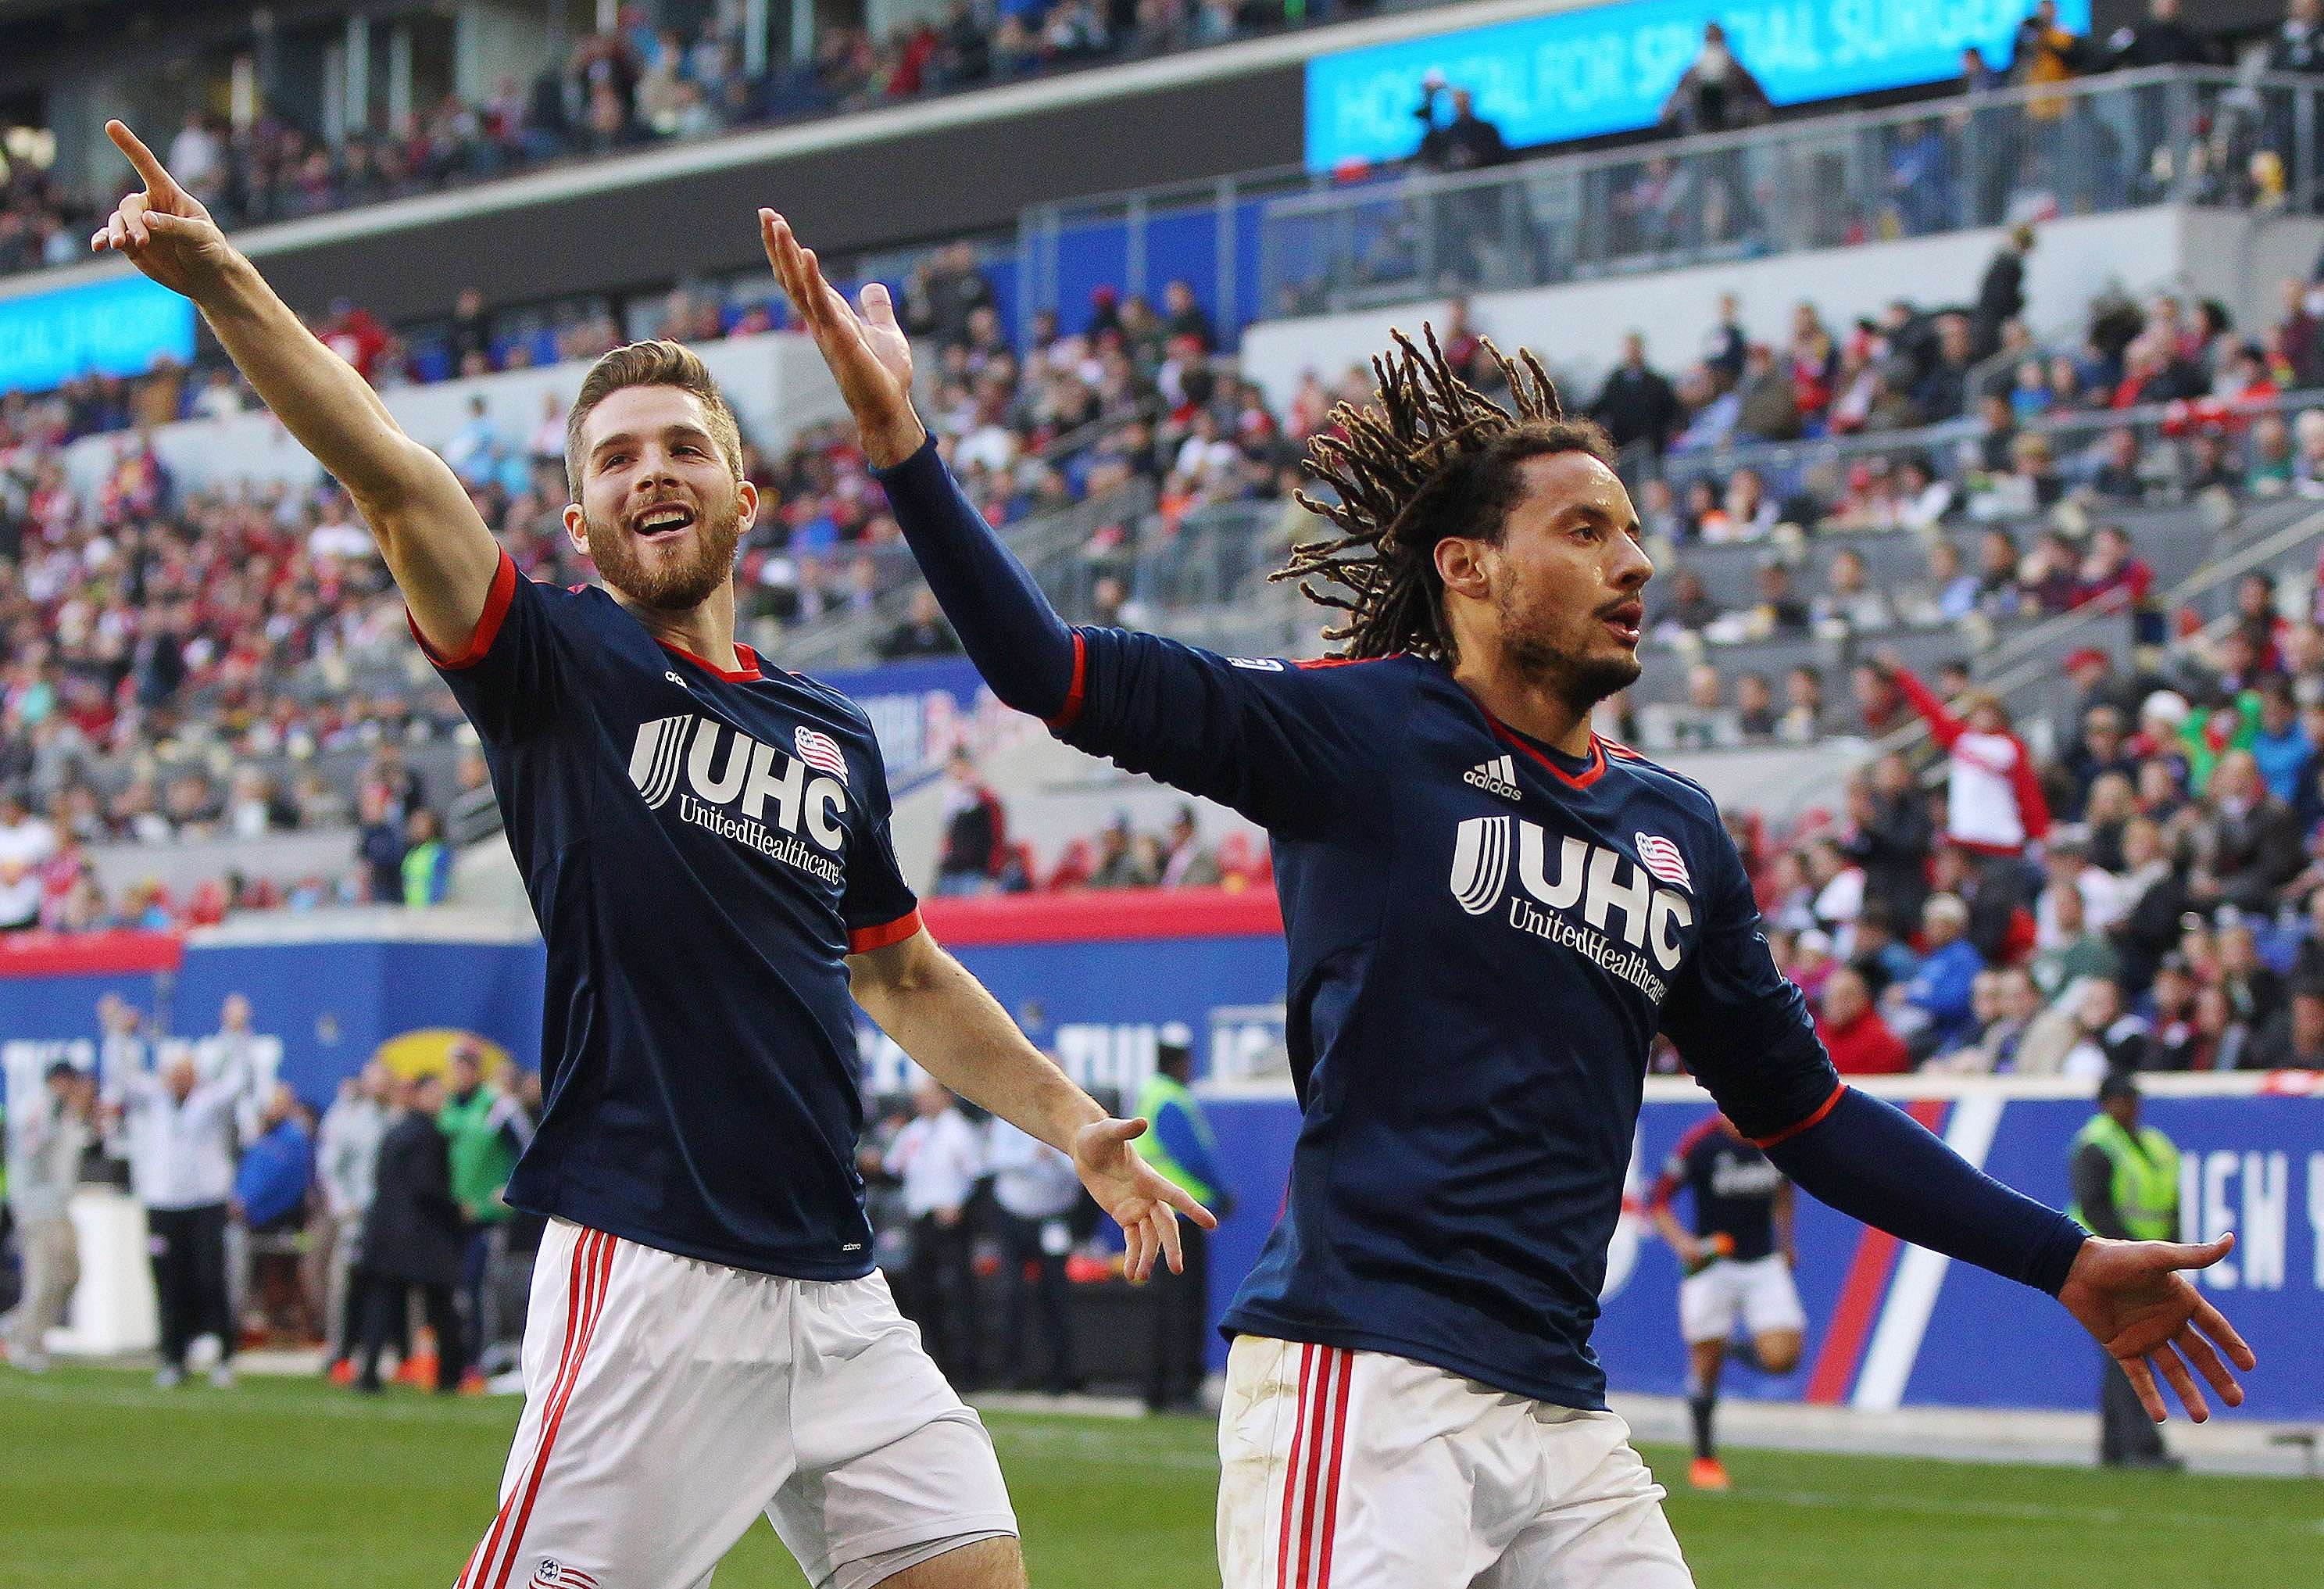 Nov 23, 2014; Harrison, NJ, USA; New England Revolution midfielder Jermaine Jones (13) (right) and forward Patrick Mullins (7) react after Jones scored the game-winning goal in the 85th minute against the New York Red Bulls during the Eastern Conference Championship at Red Bull Arena. The Revolution defeated the Red Bulls 2-1. Mandatory Credit: Andy Marlin-USA TODAY Sports Foto: Andy Marlin/USA Today Sports